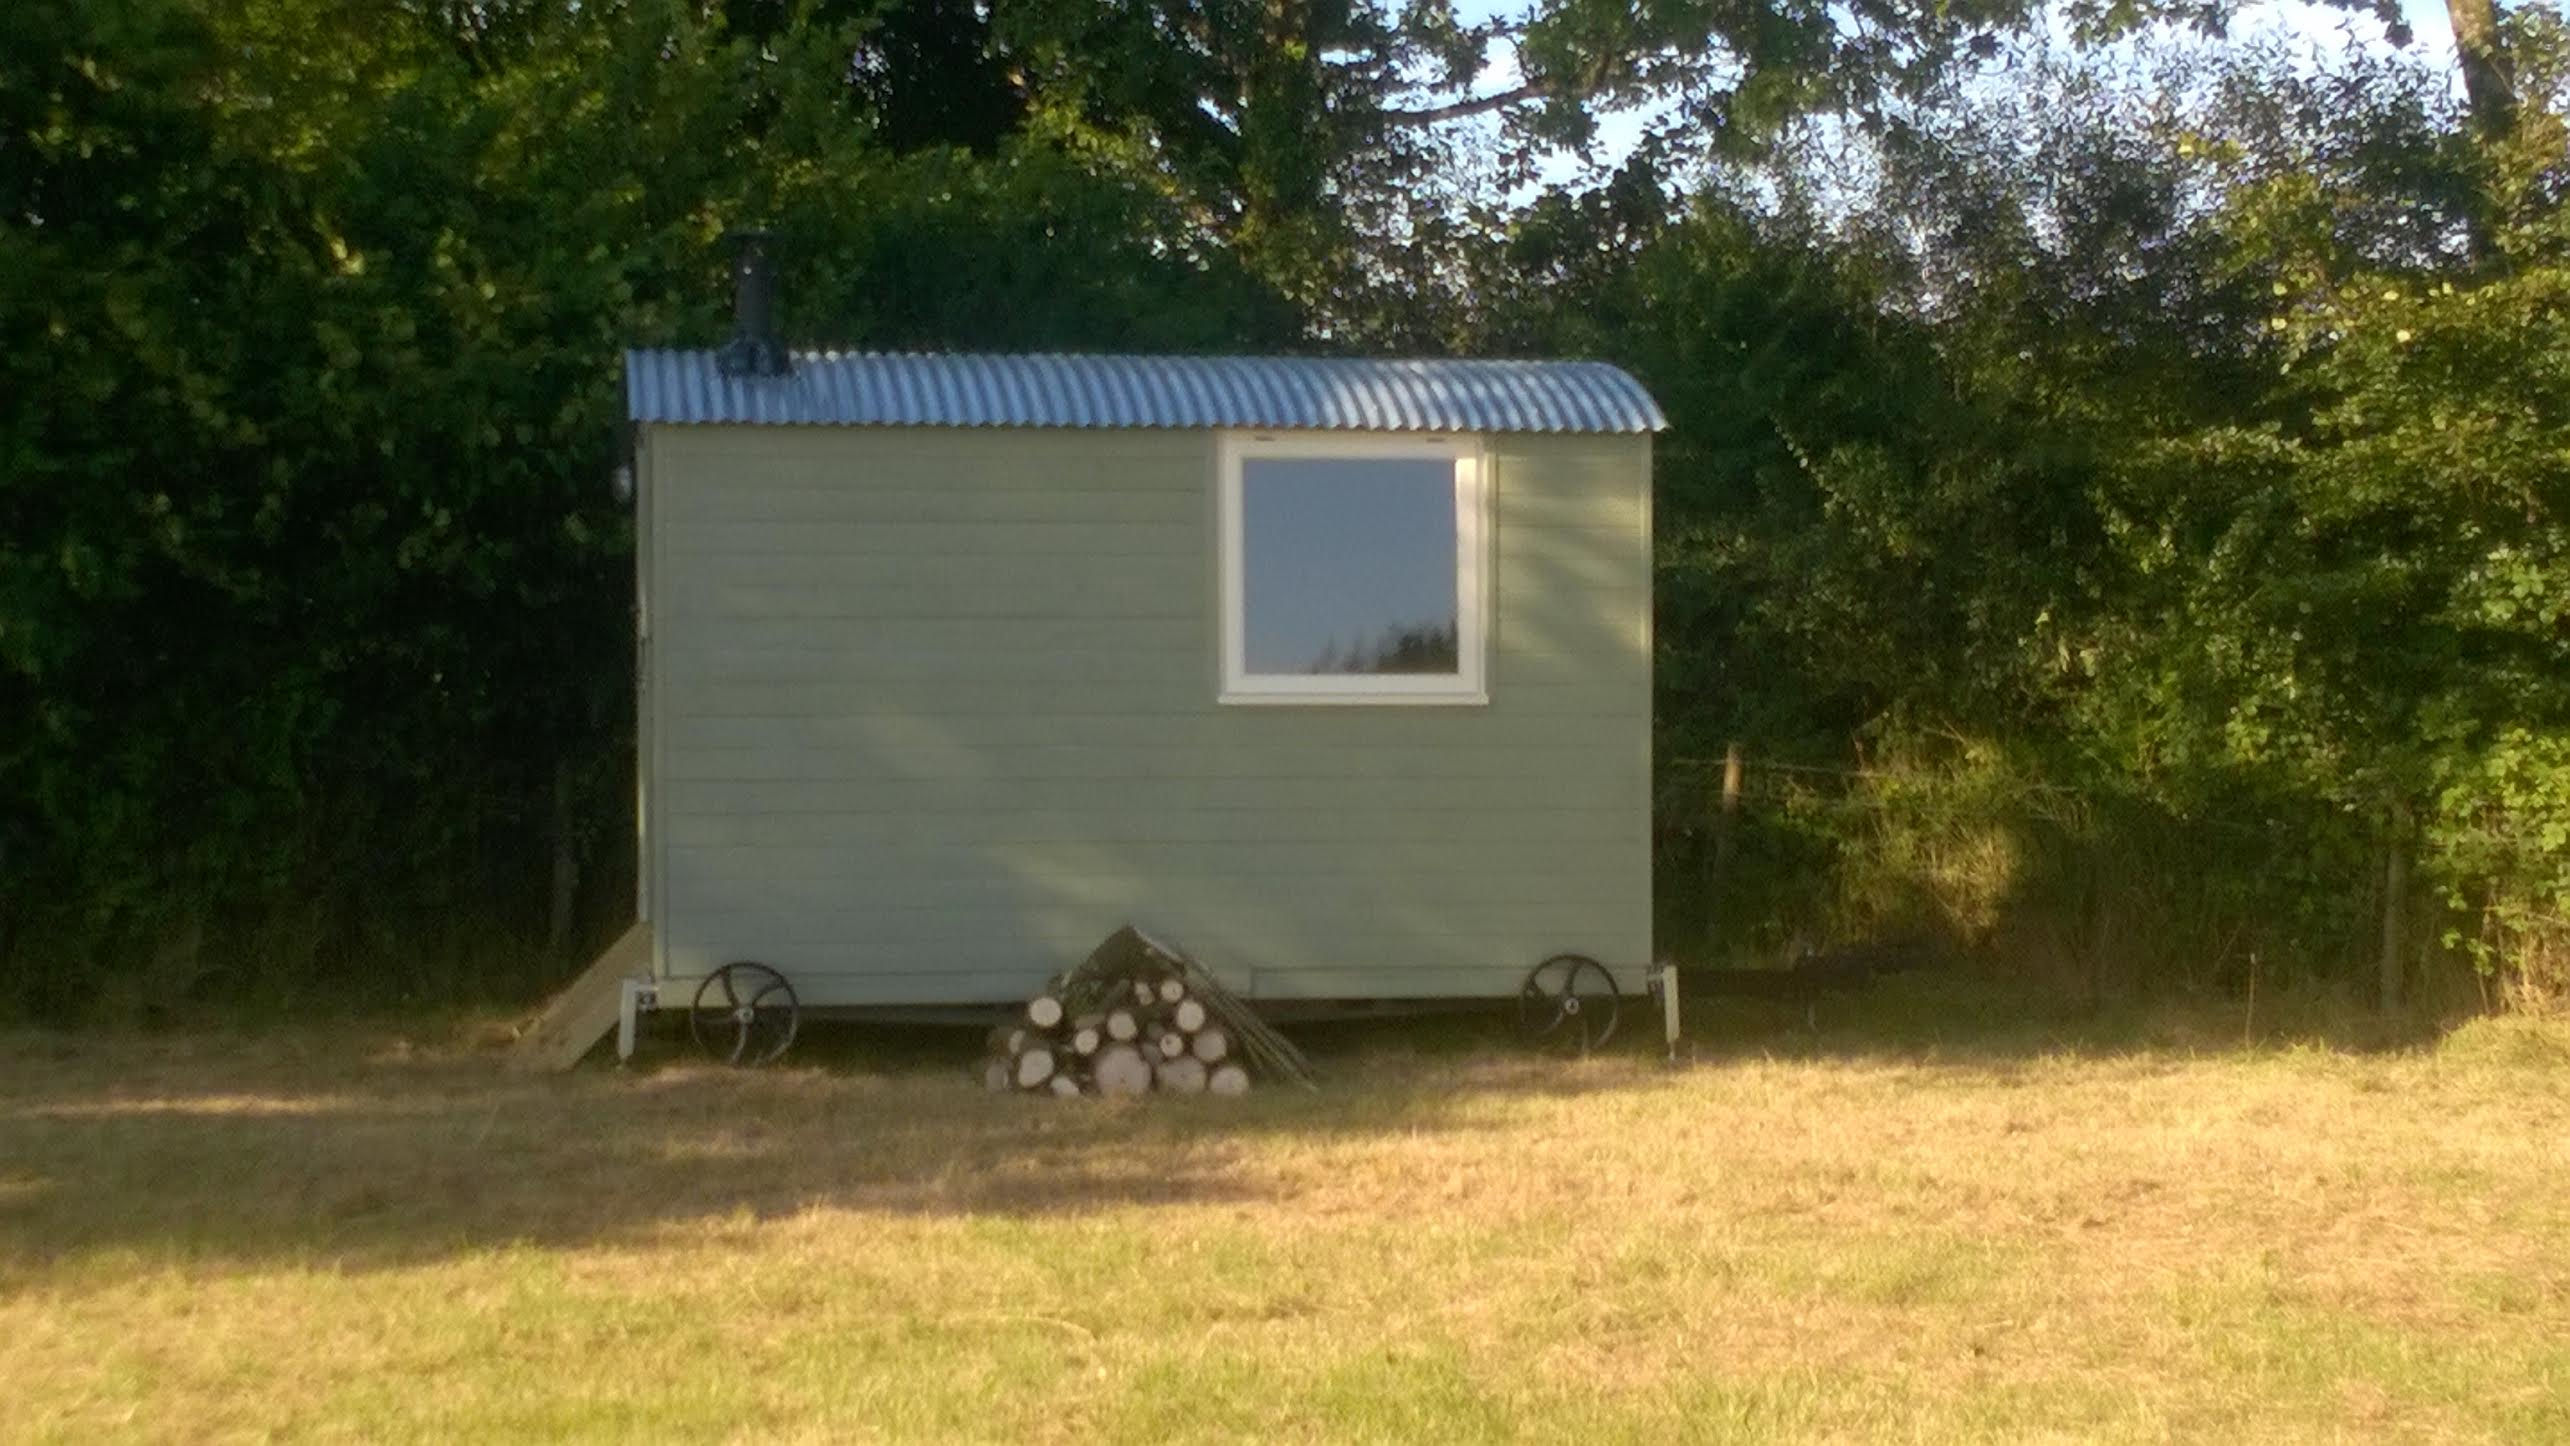 Shropshire Shepherds Huts and Pods